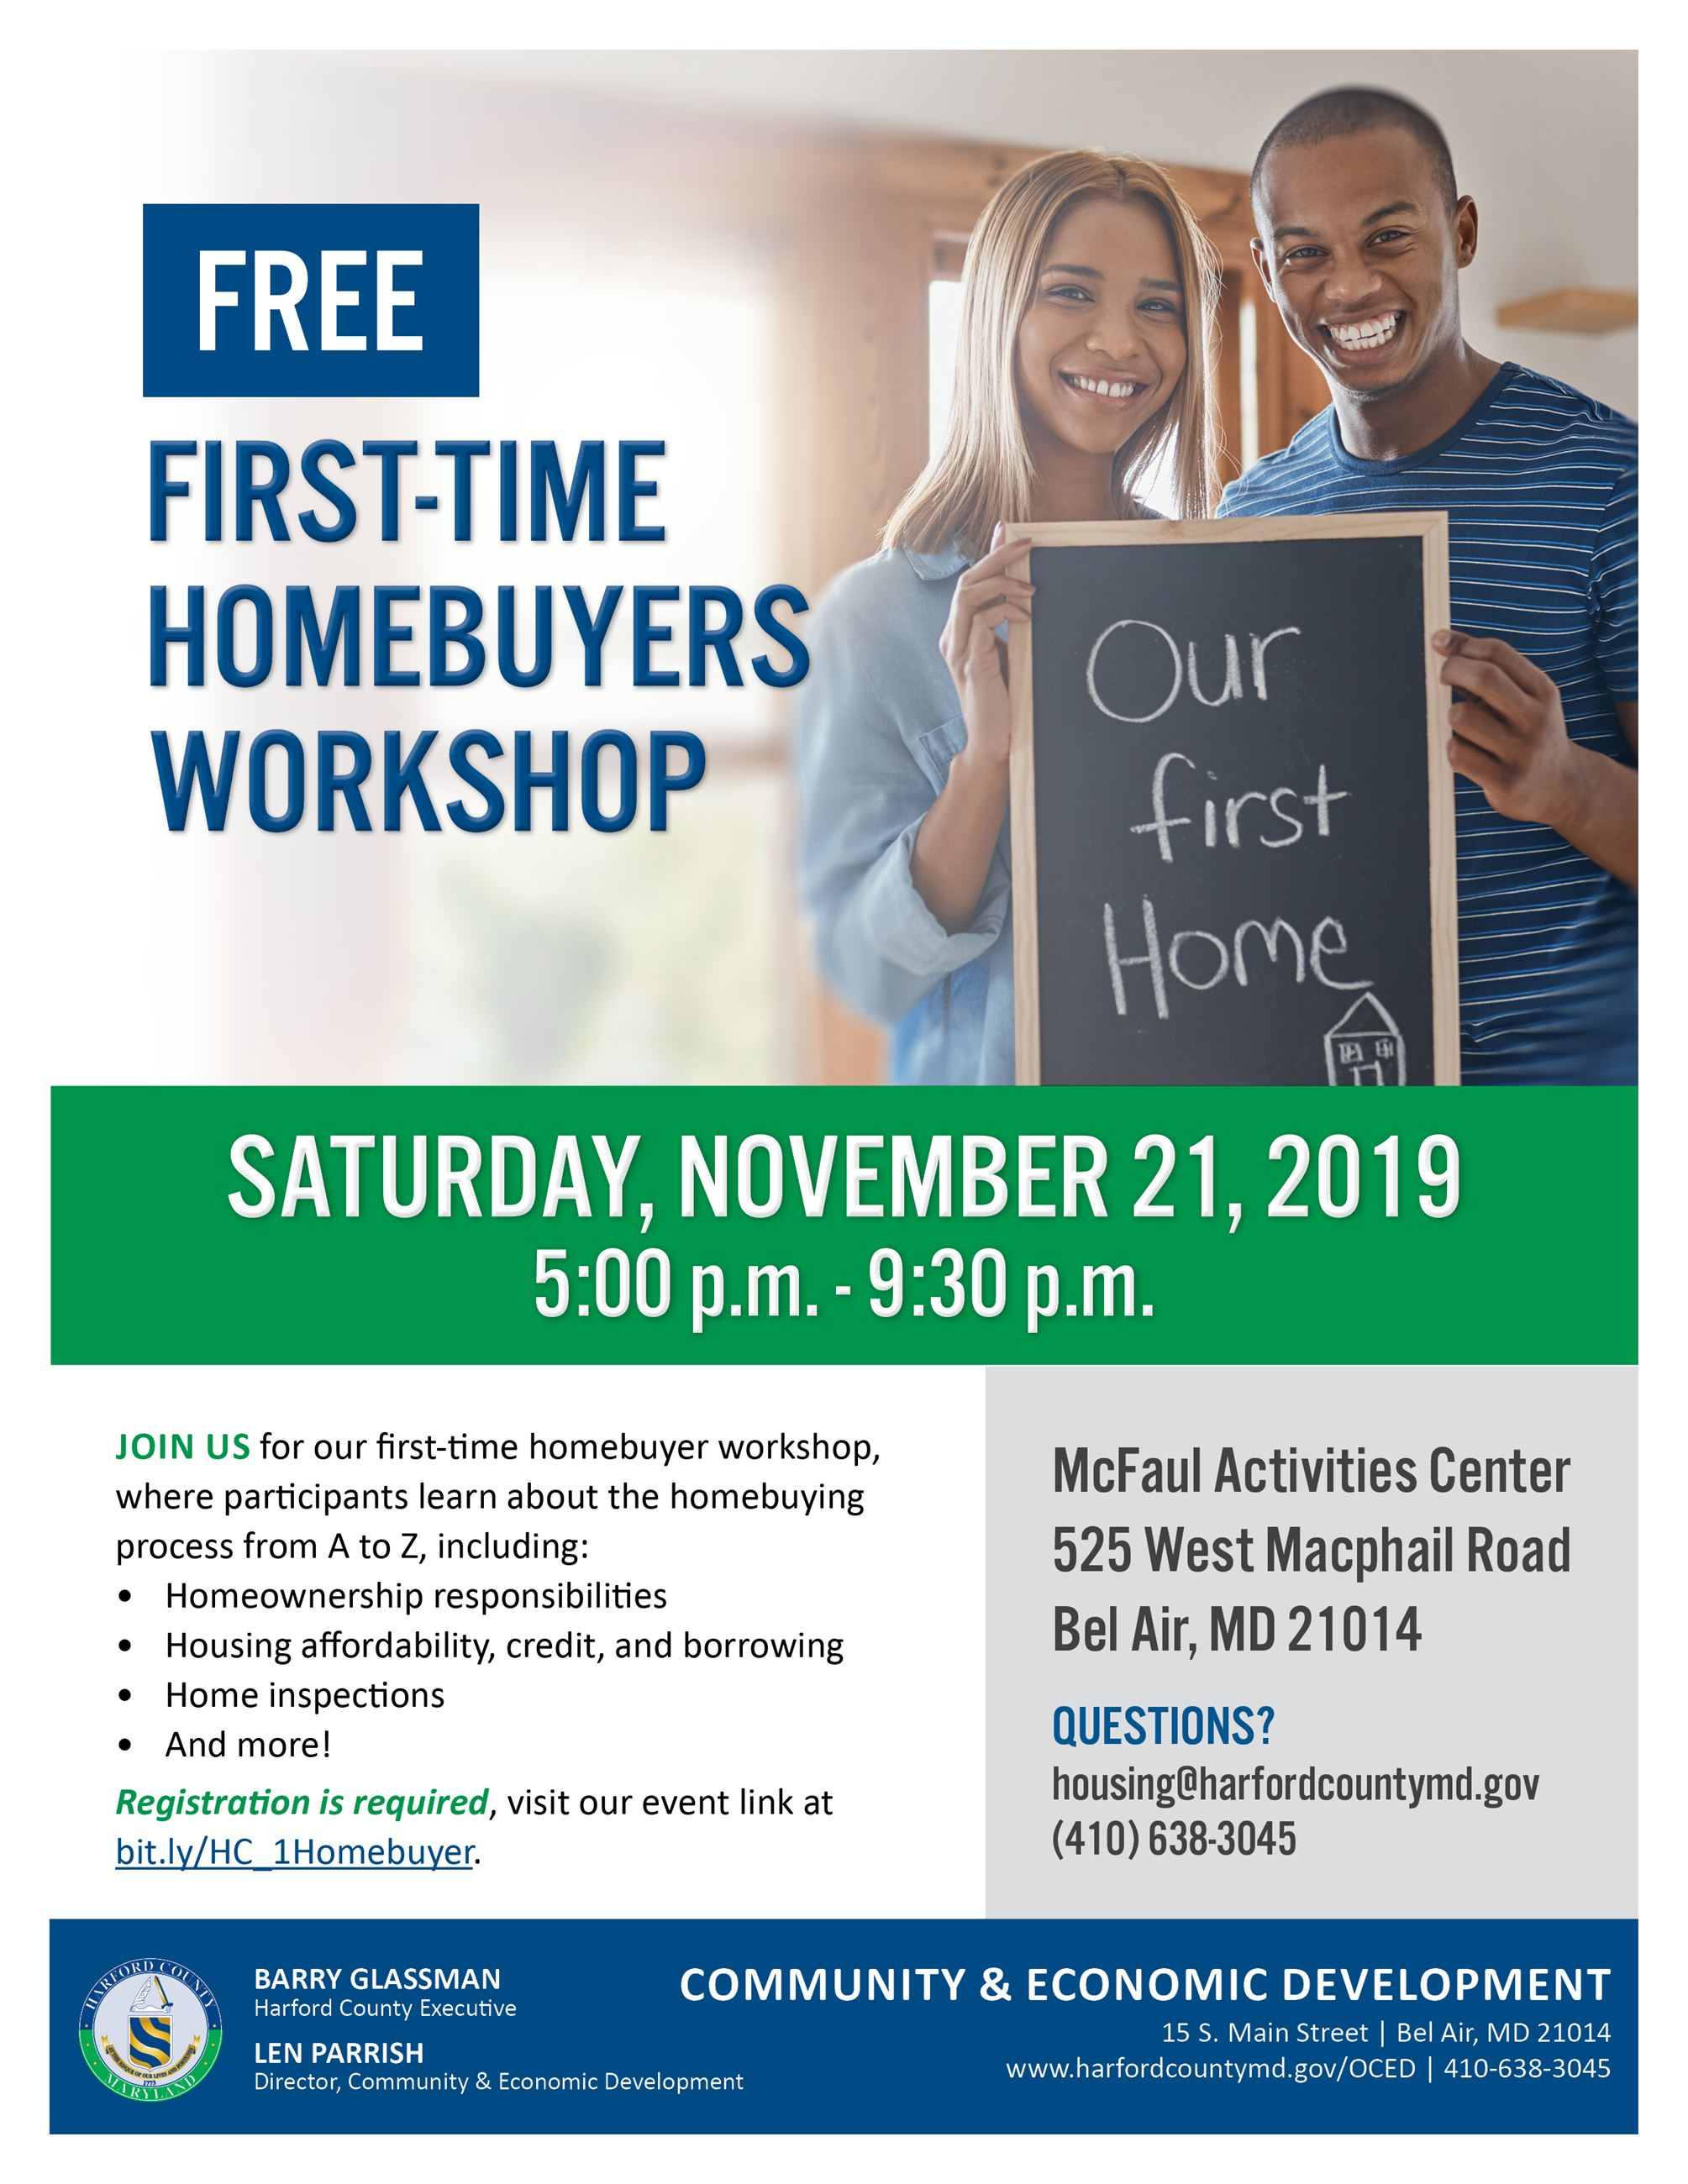 First Time Homebuyers Workshop Flyer_2019_11